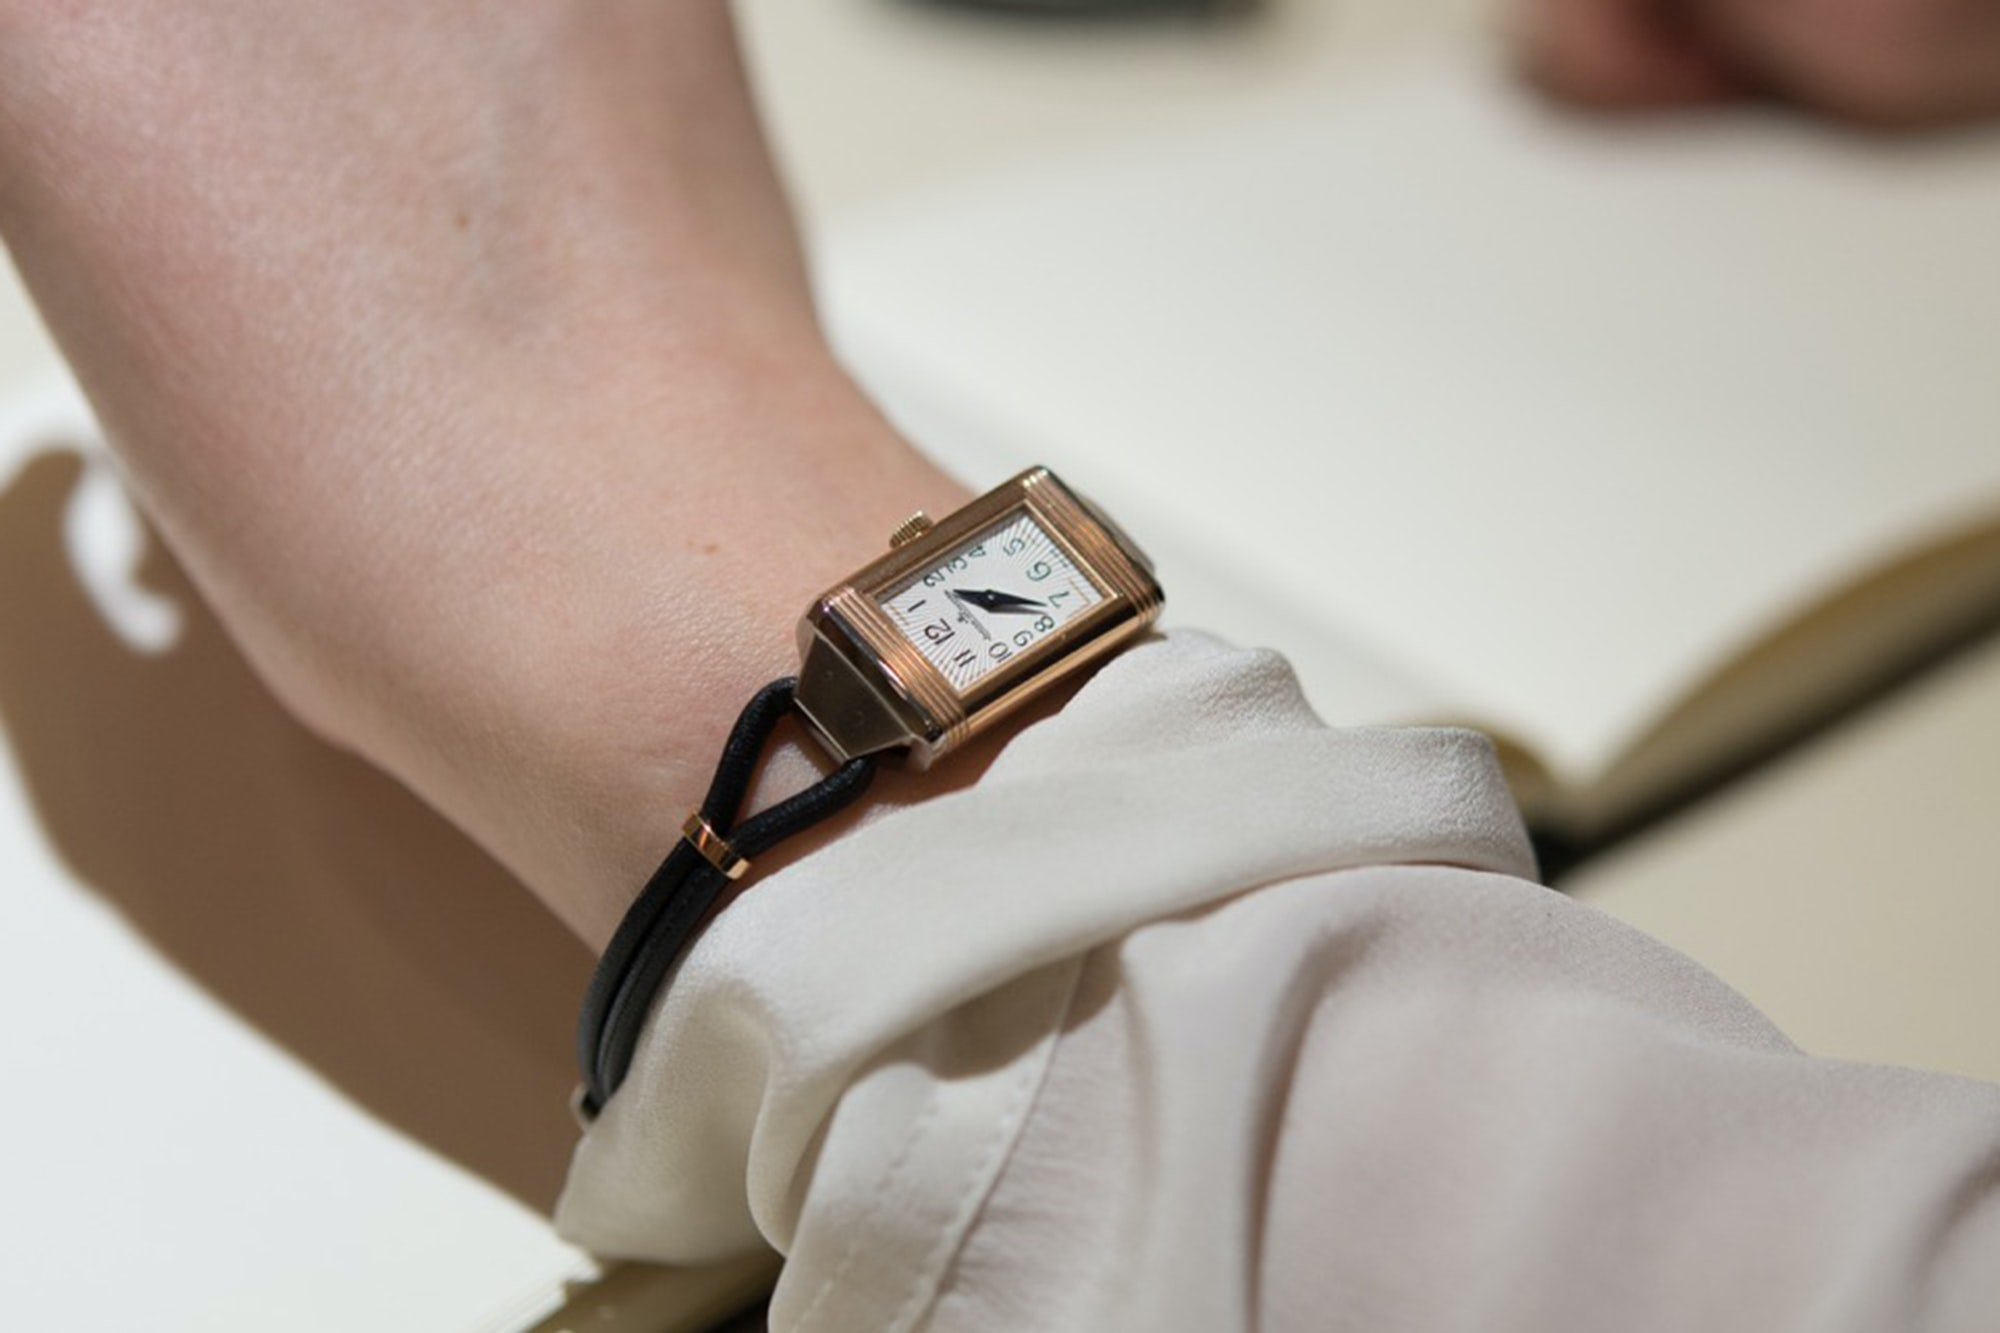 Jaeger LeCoultre Ladies Reverso Cordonnet Editors' Picks: The HODINKEE Valentine's Day 2016 Watch Gift Guide, Because Watches Won't Give You Cavities Editors\' Picks: The HODINKEE Valentine\'s Day 2016 Watch Gift Guide, Because Watches Won\'t Give You Cavities Cordonnet